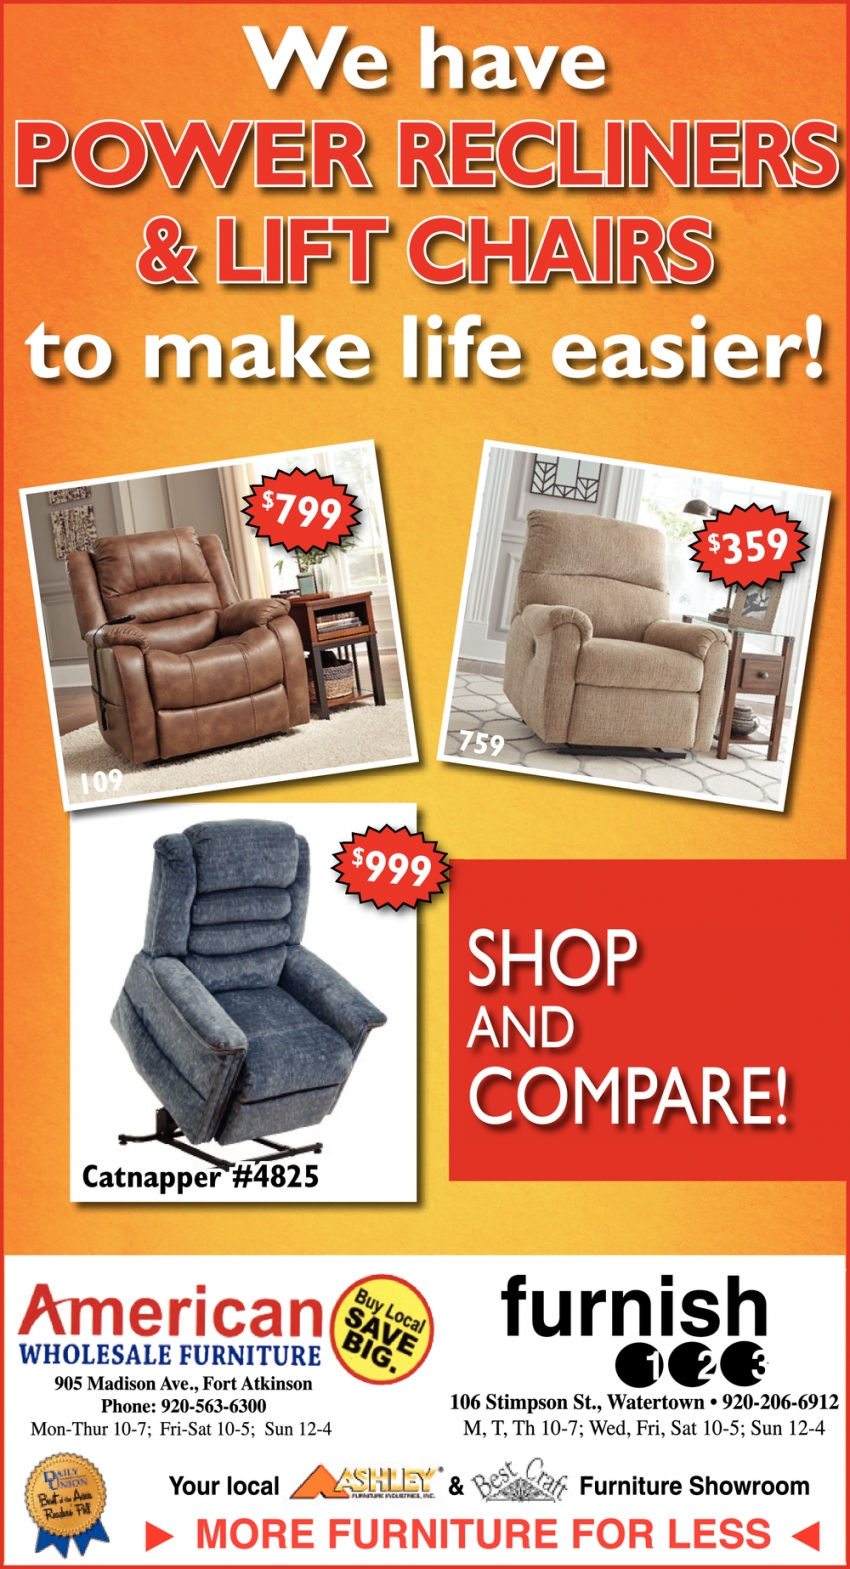 We Have Power Recliners Lift Chairs To Make Life Easier American Wholesale Furniture Furnish 123